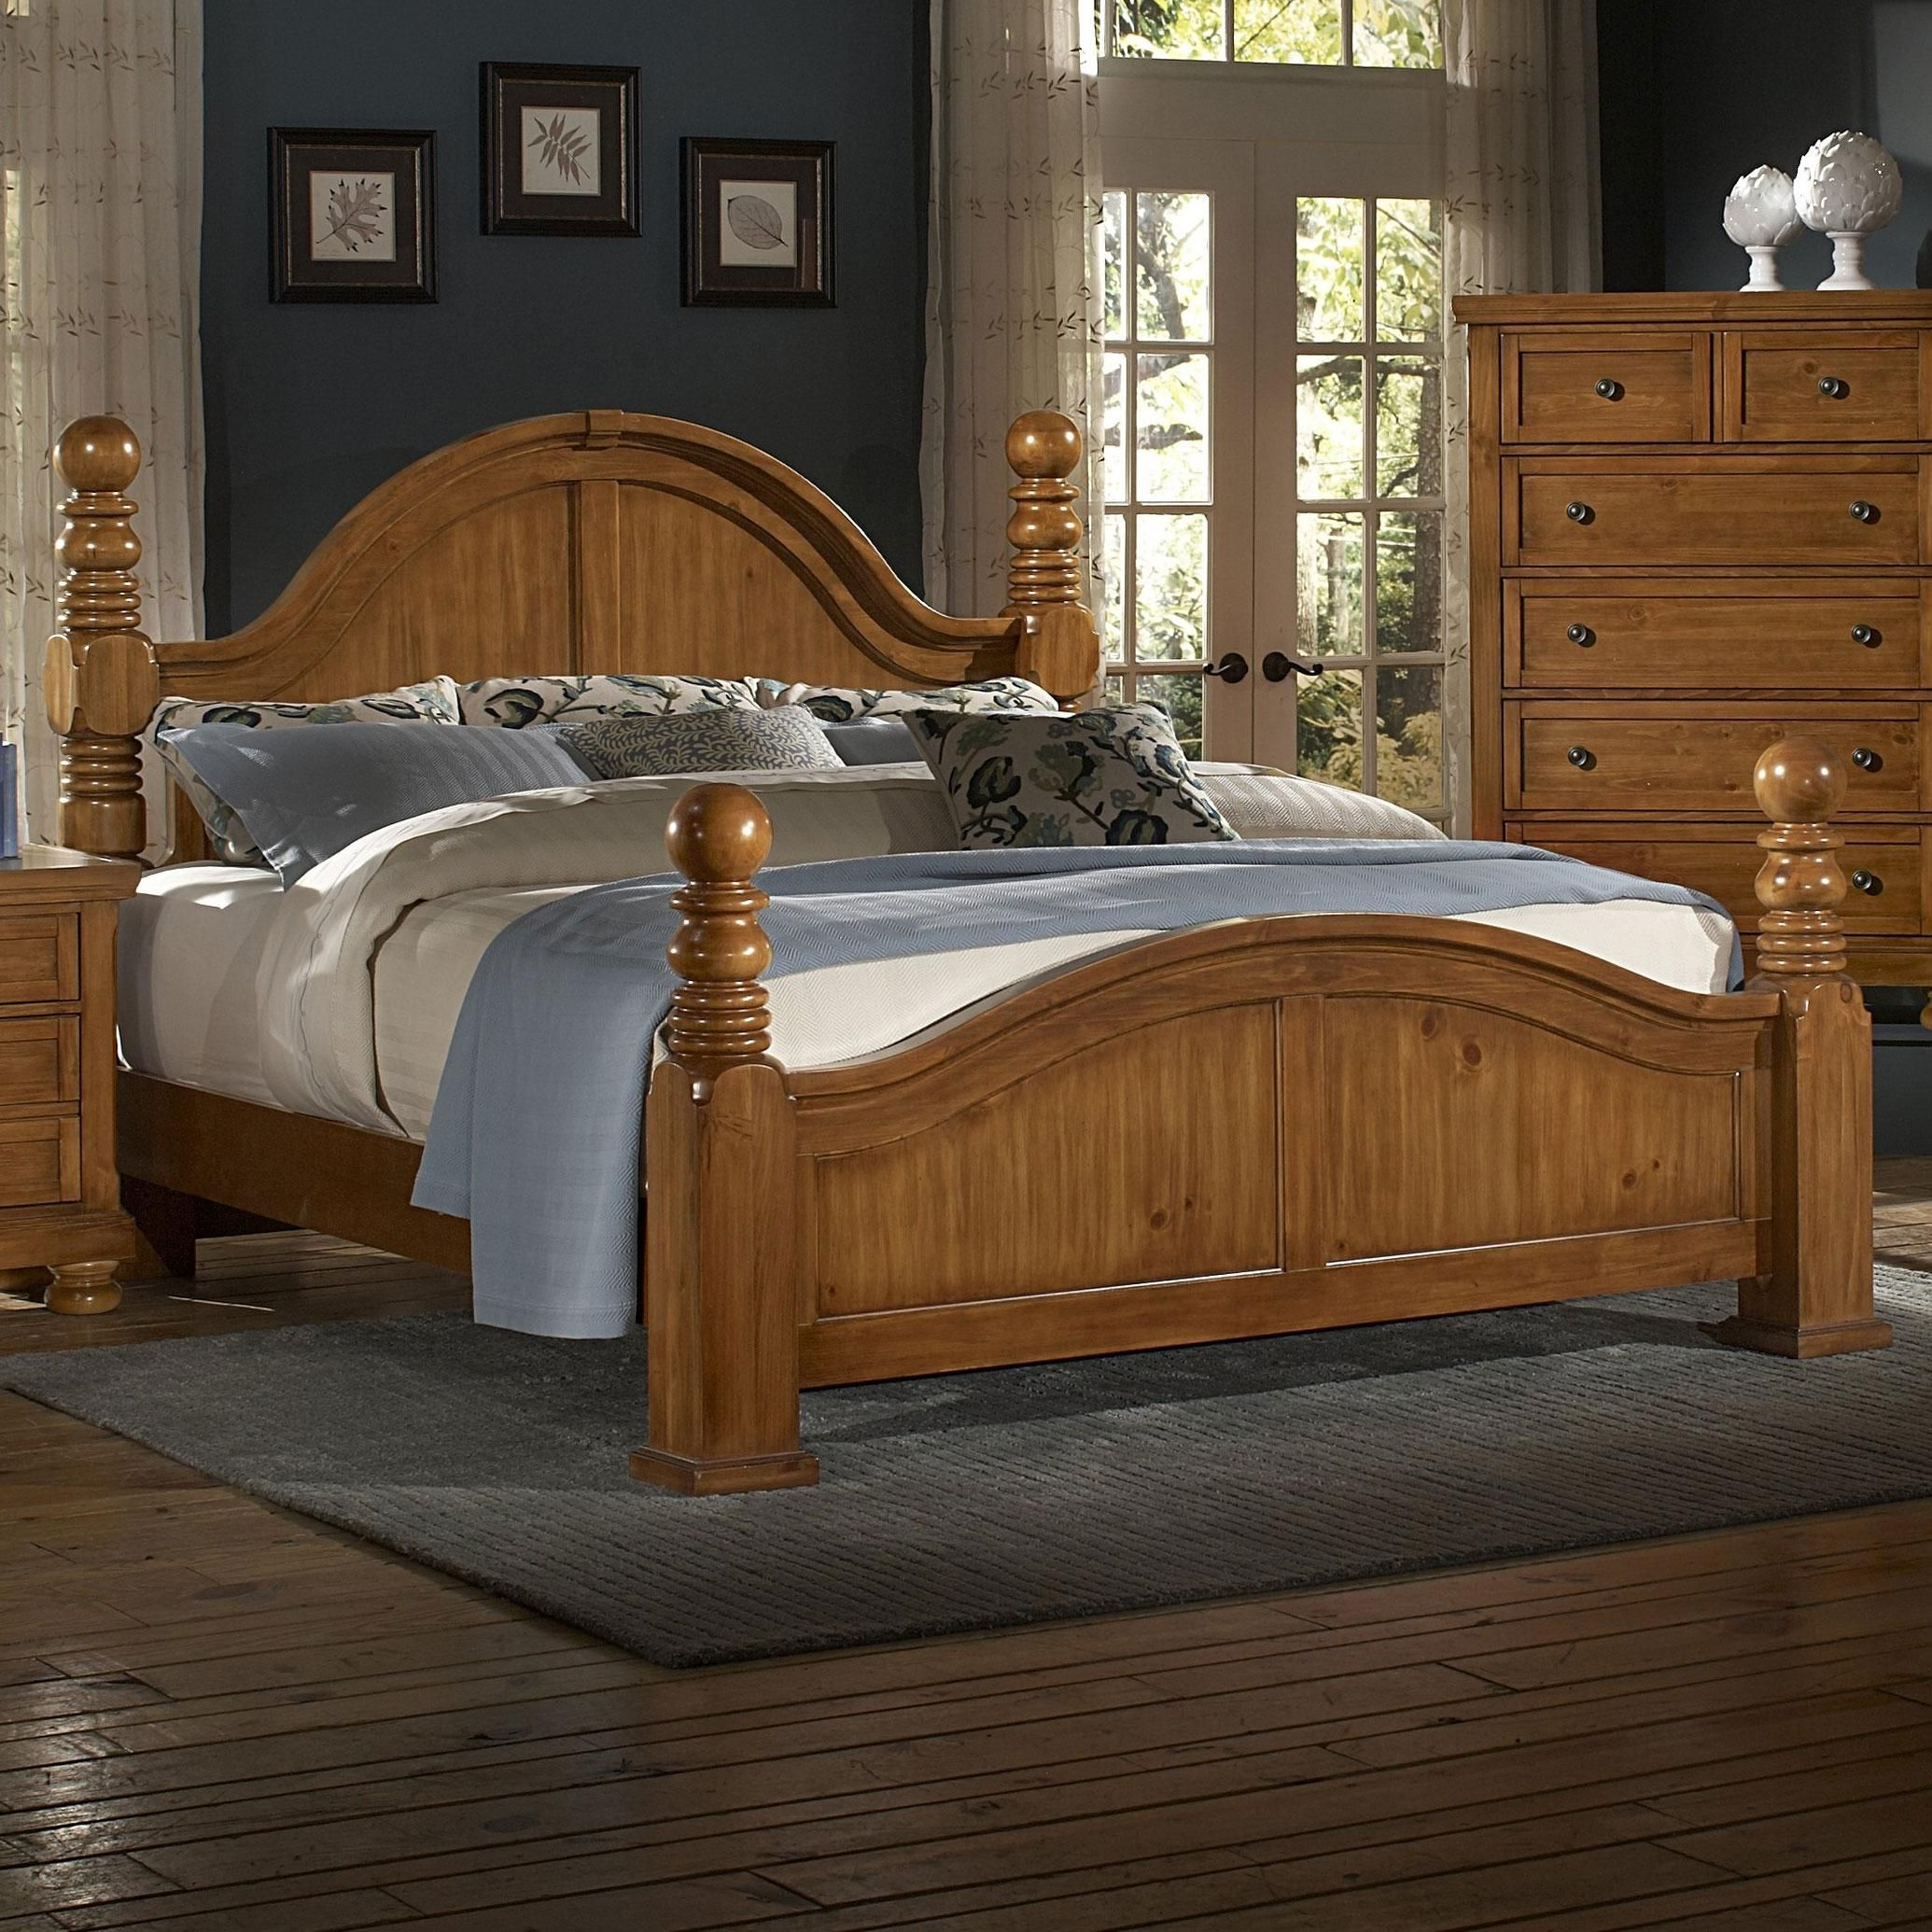 Vaughan Bassett Bedroom Cool Vaughan Bassett For Wellcrafted